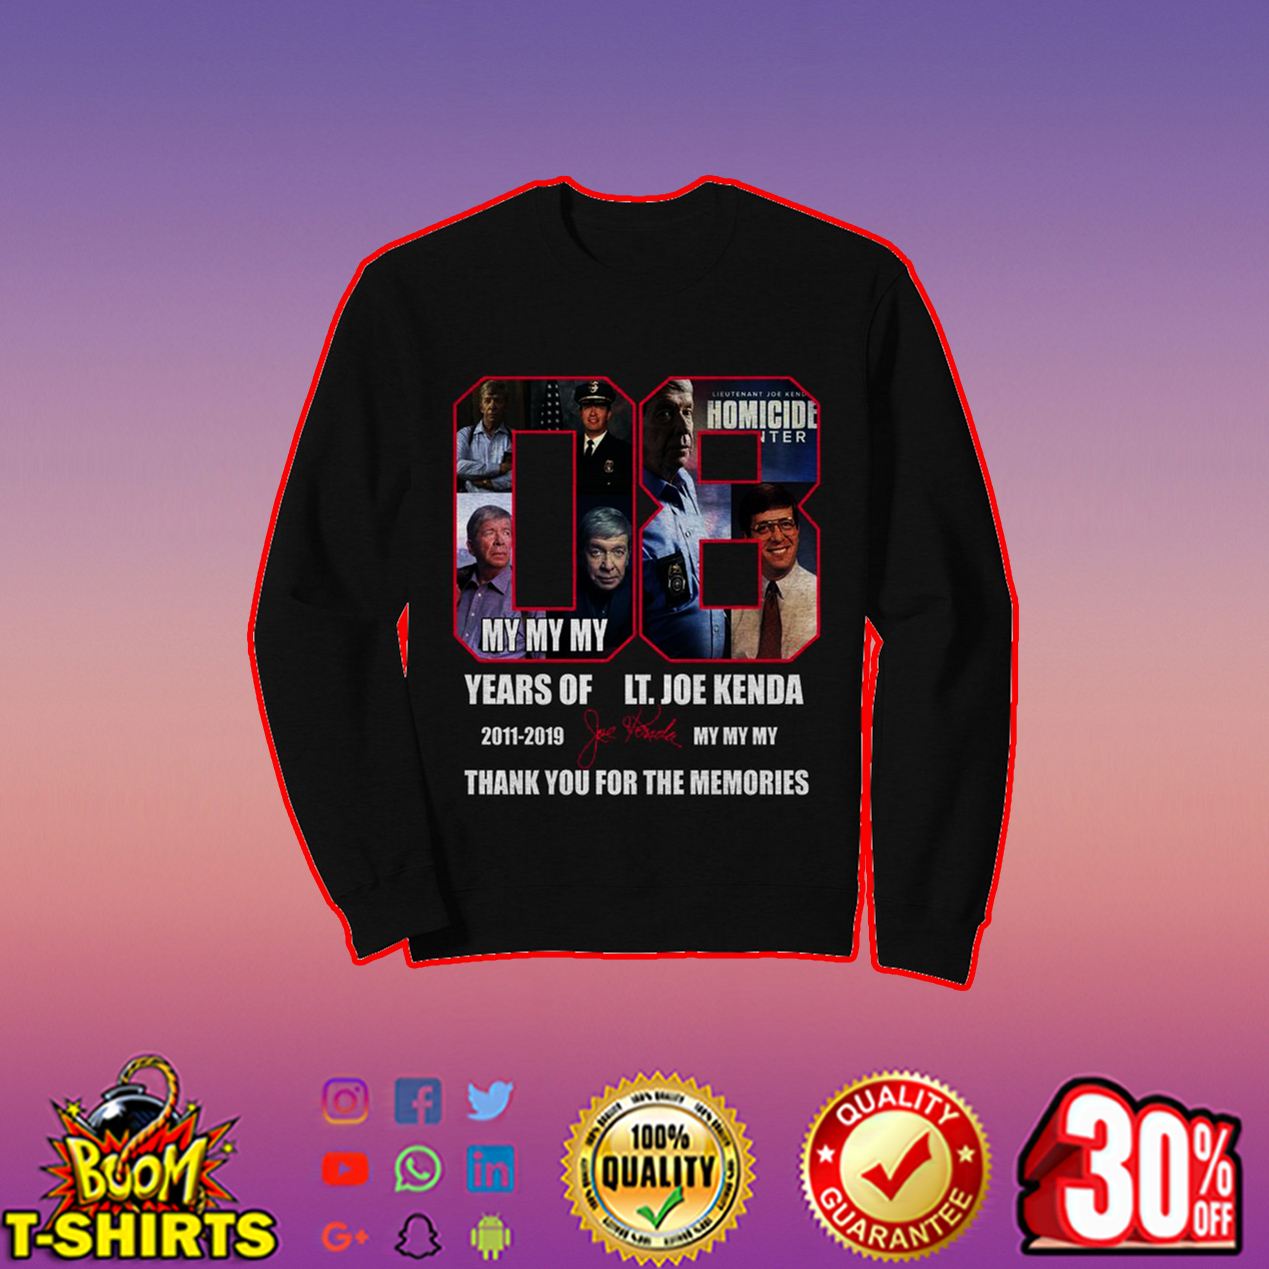 8 years of LT Joe Kenda thank you for the memories sweatshirt